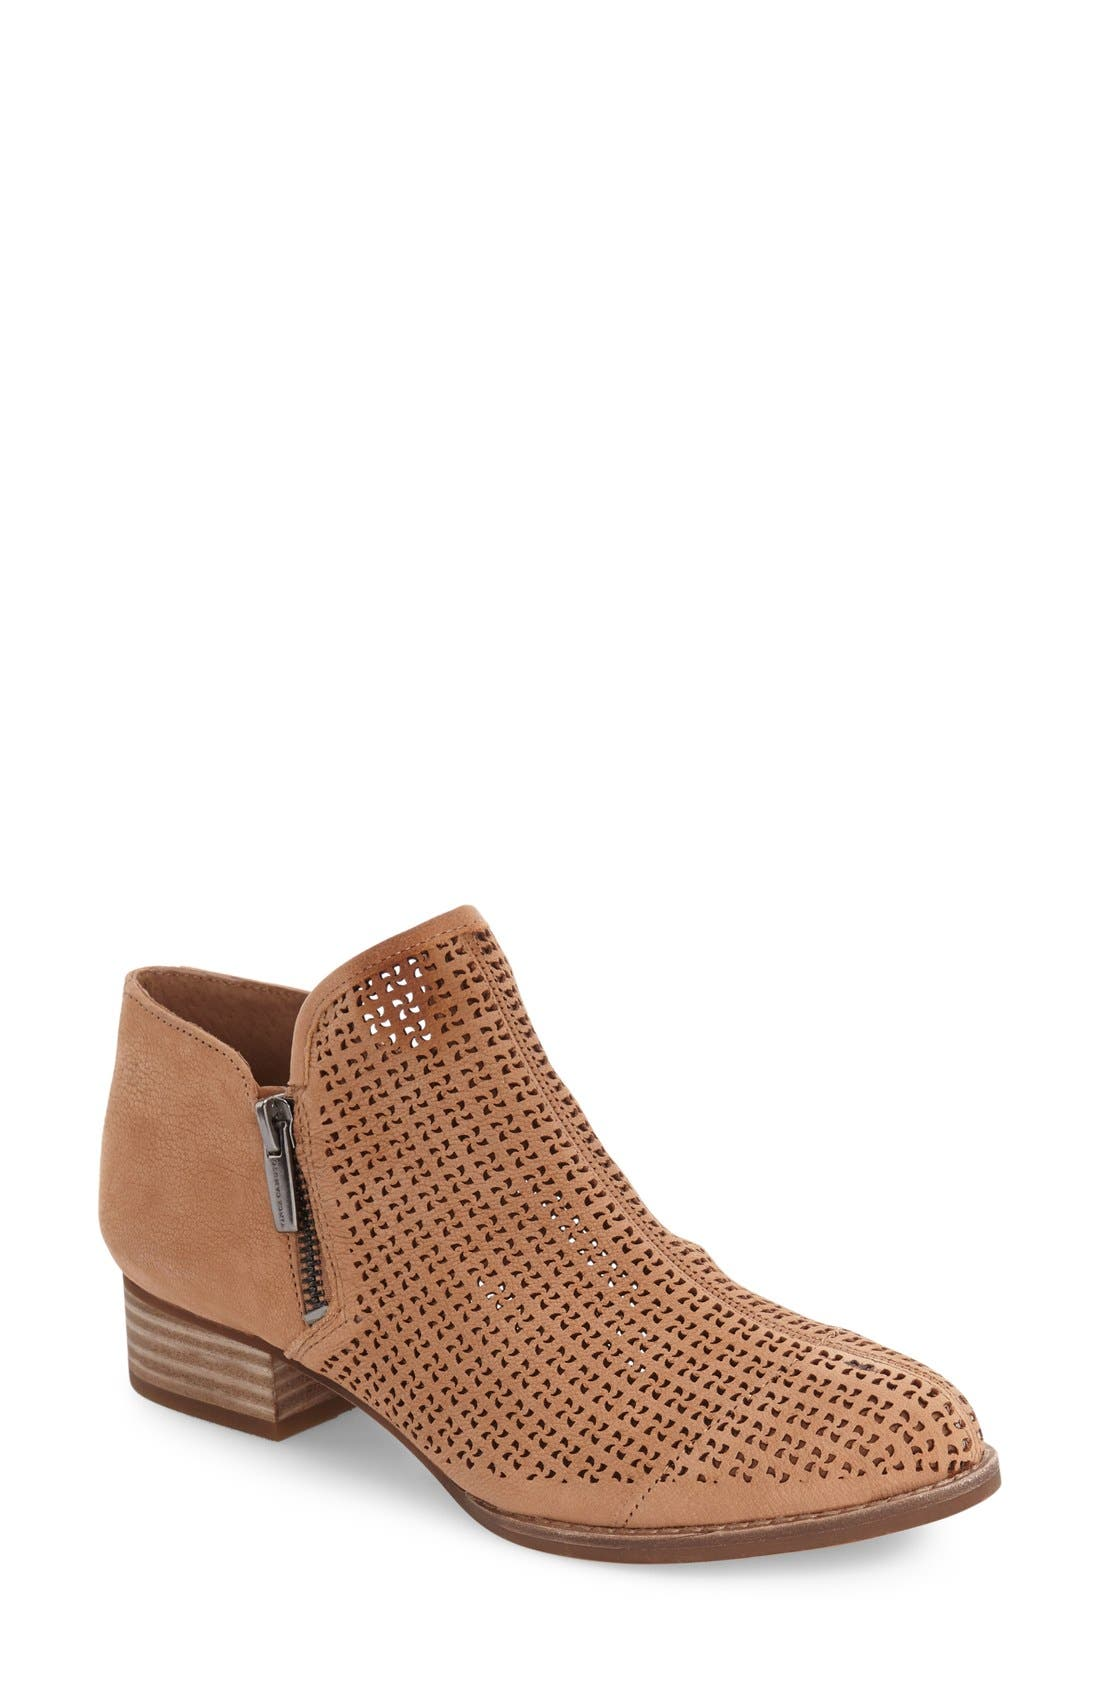 Alternate Image 1 Selected - Vince Camuto Canilla Laser Cut Bootie (Women)